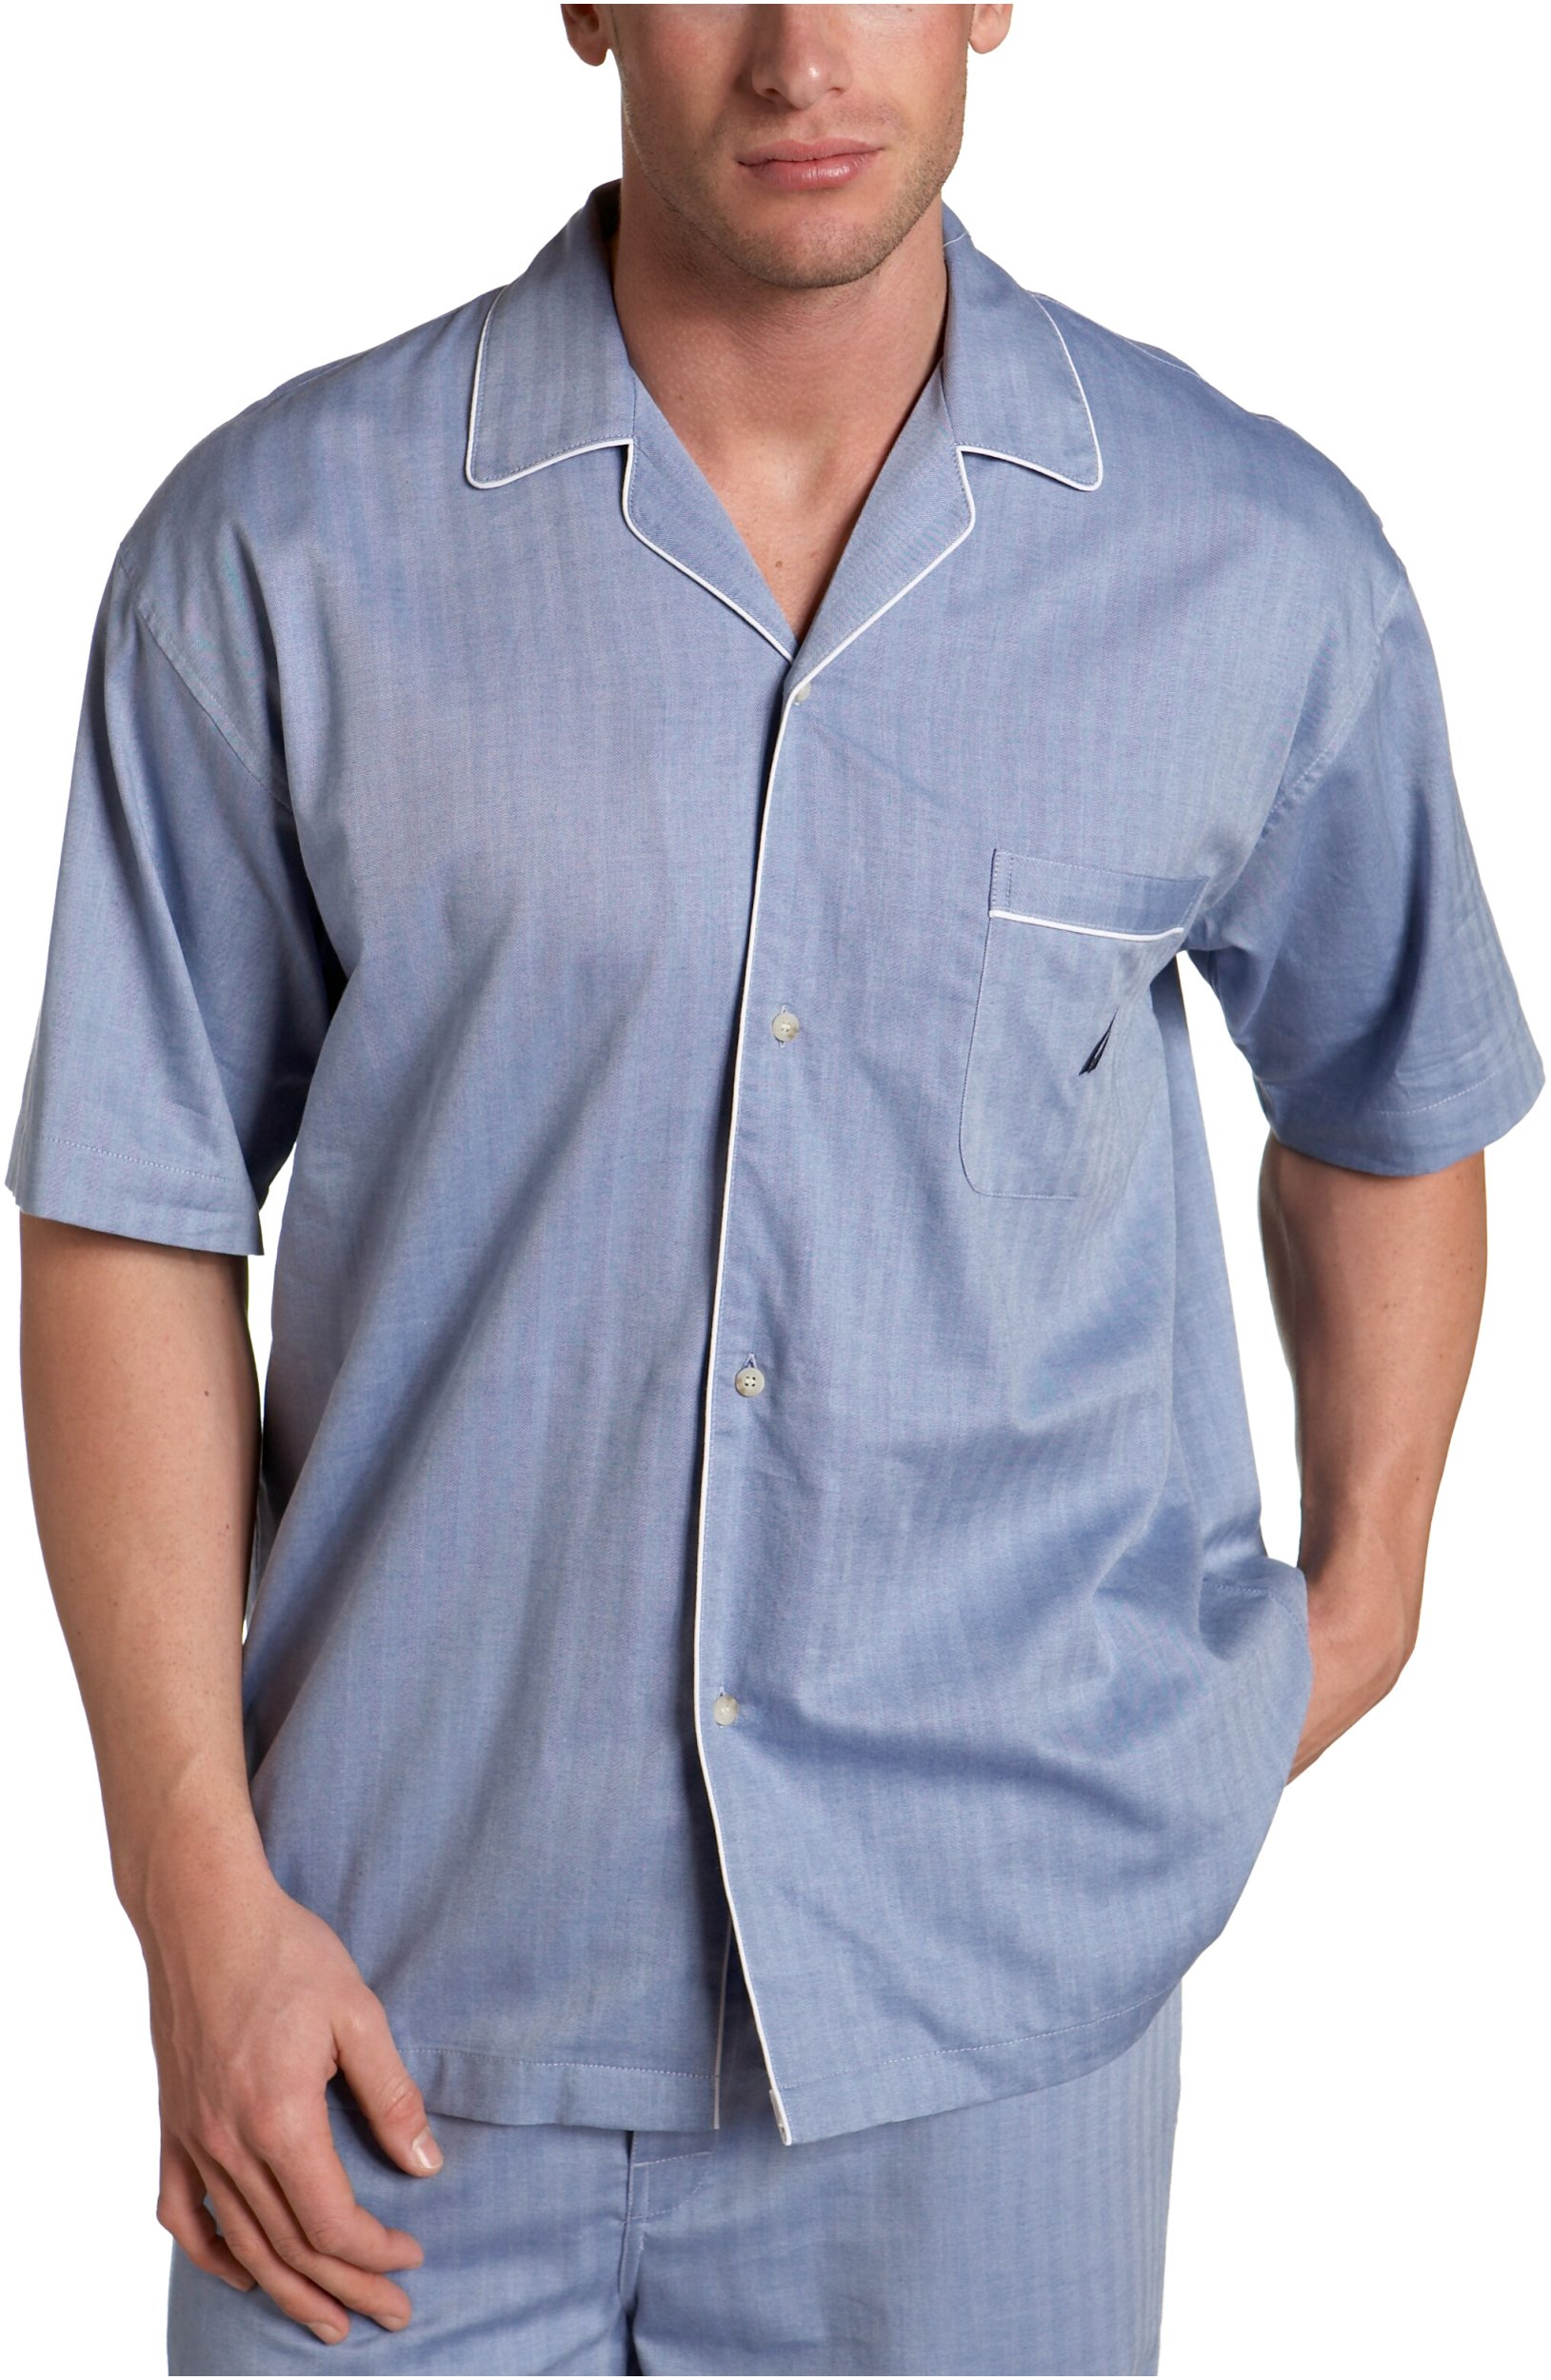 Nautica Men's Captains Herringbone Woven Short Sleeve Pajama Top,Blue Bone,Medium